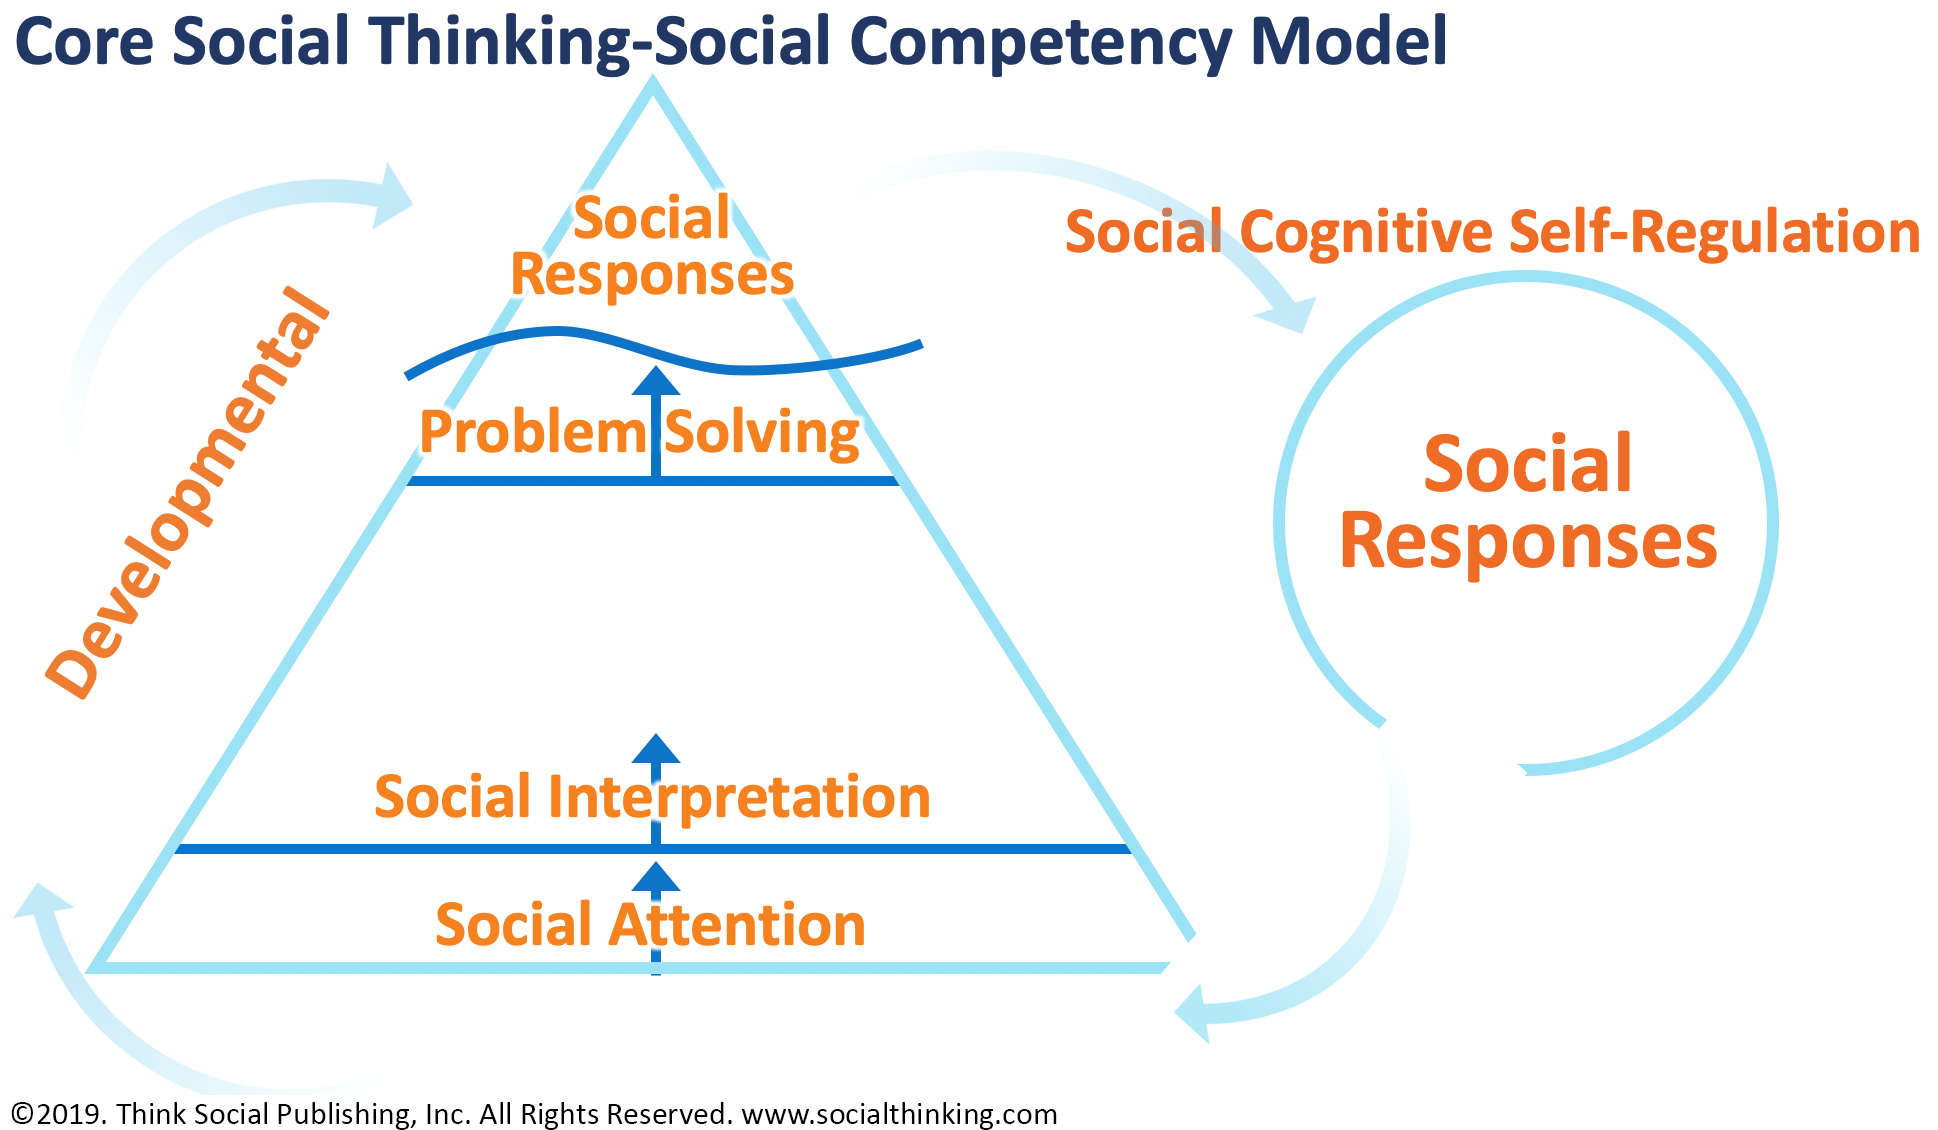 Social Competency Model - Image 2